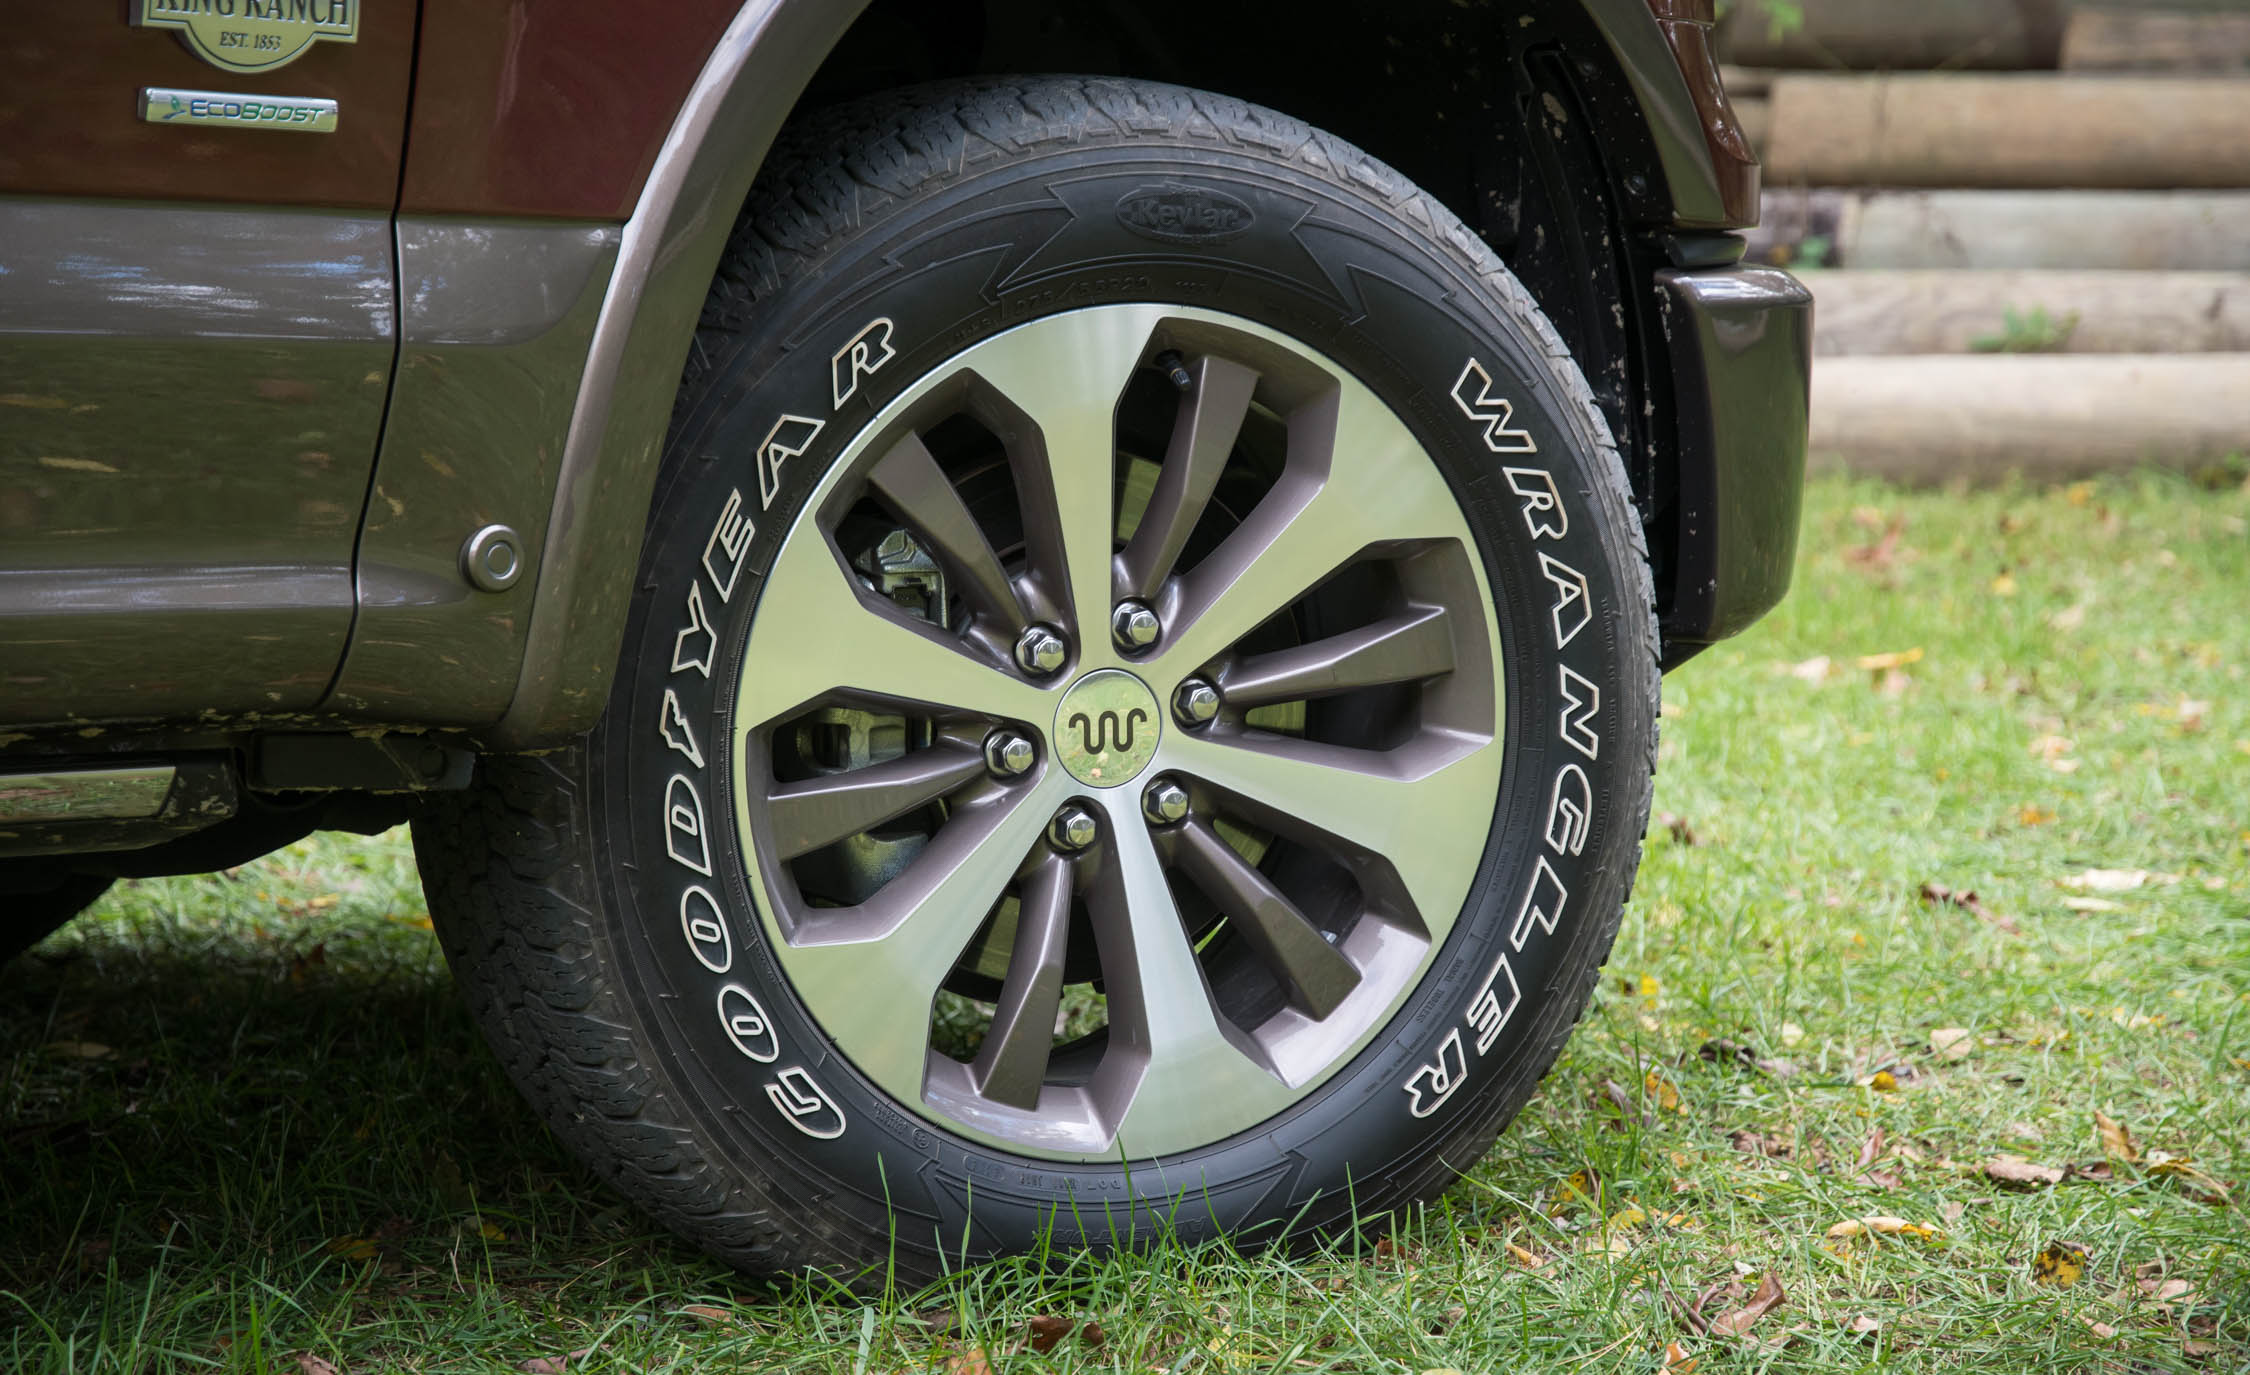 2017 Ford F 150 King Ranch Exterior View Wheel And Velg (Photo 22 of 50)